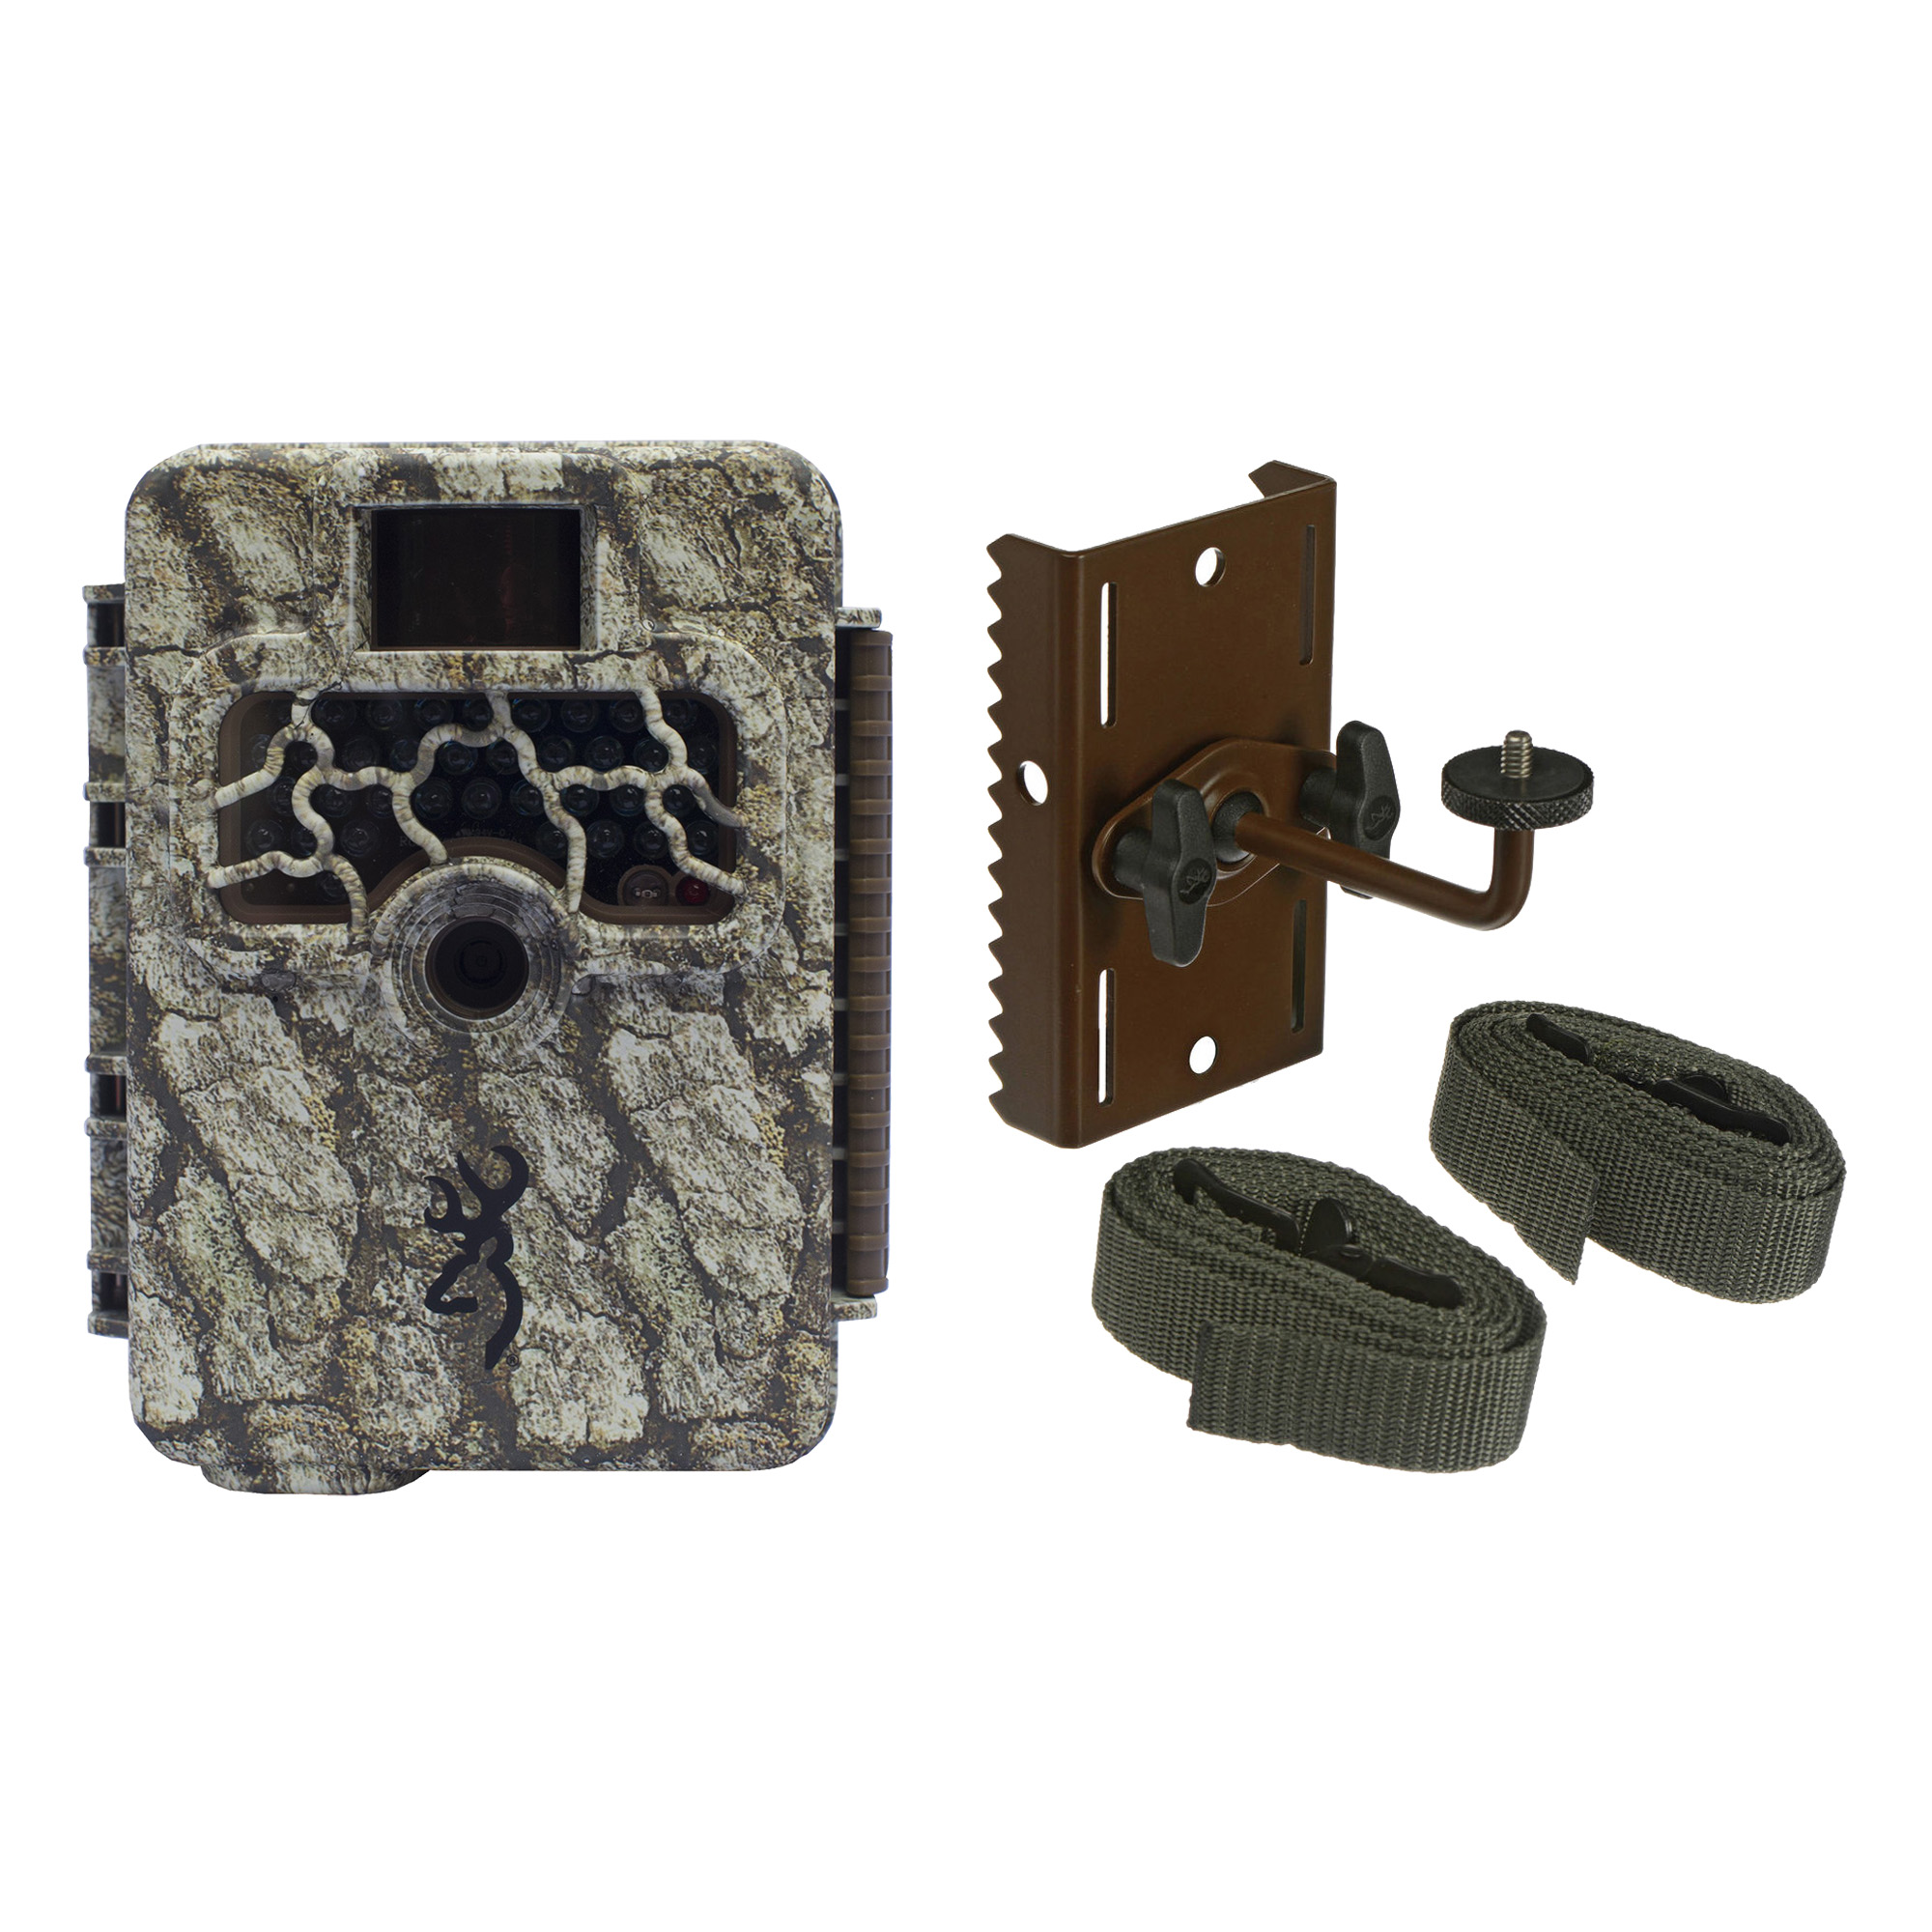 Browning Trail Cameras Command Ops 14MP Video Infrared Game Camera + Tree Mount by Browning Trail Cameras